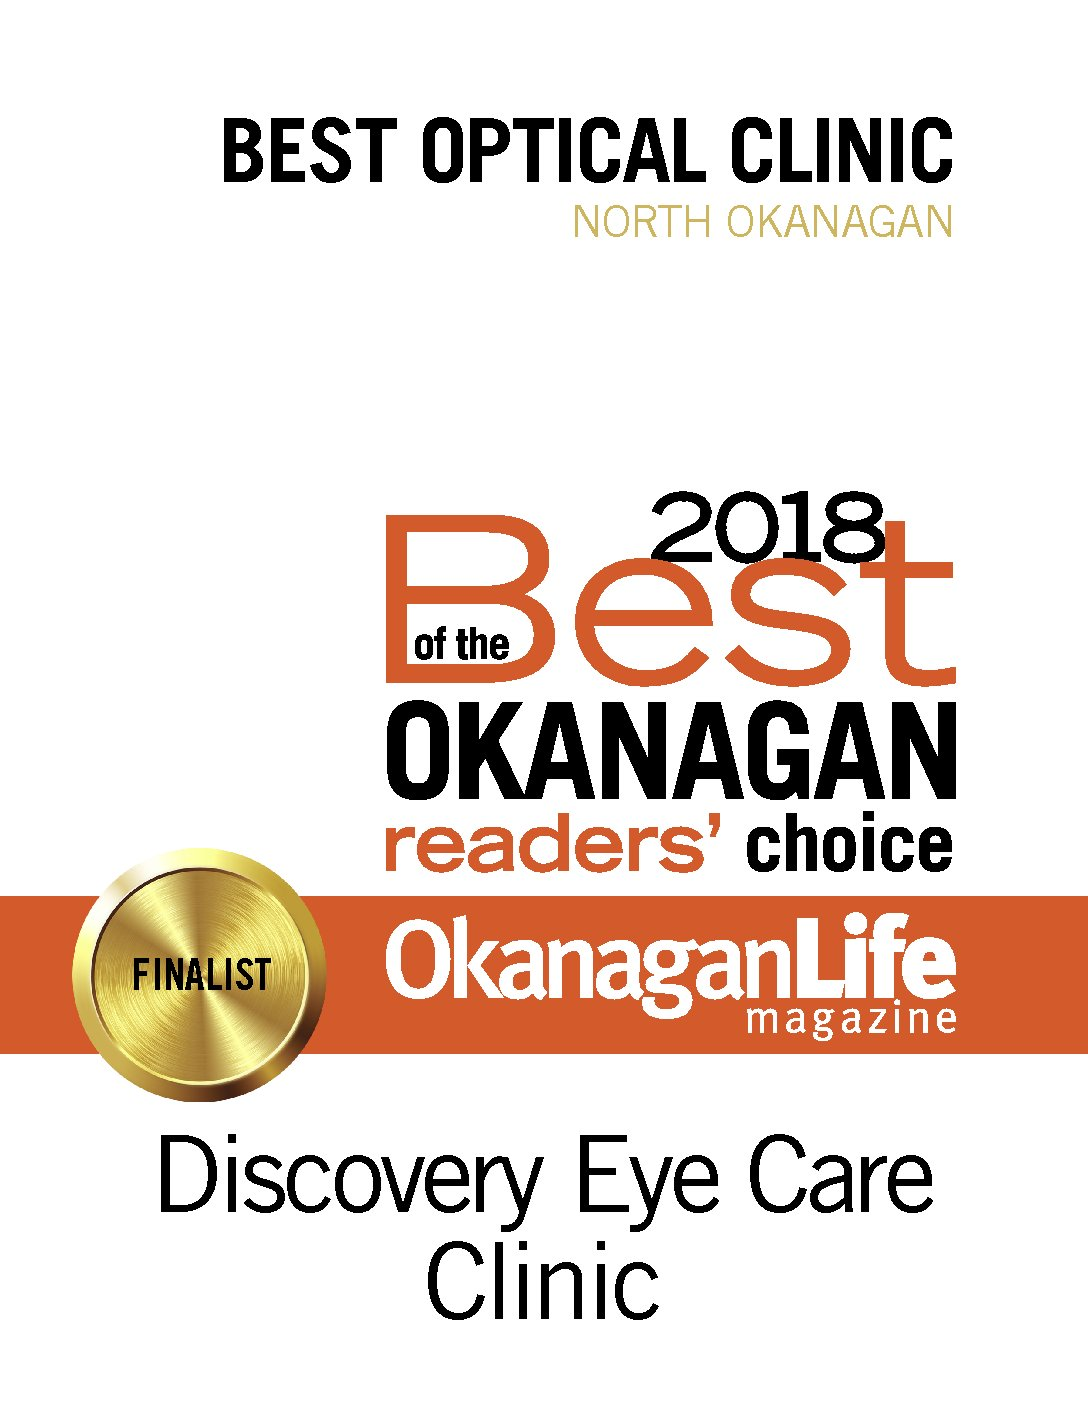 Discovery Eye Care Clinic